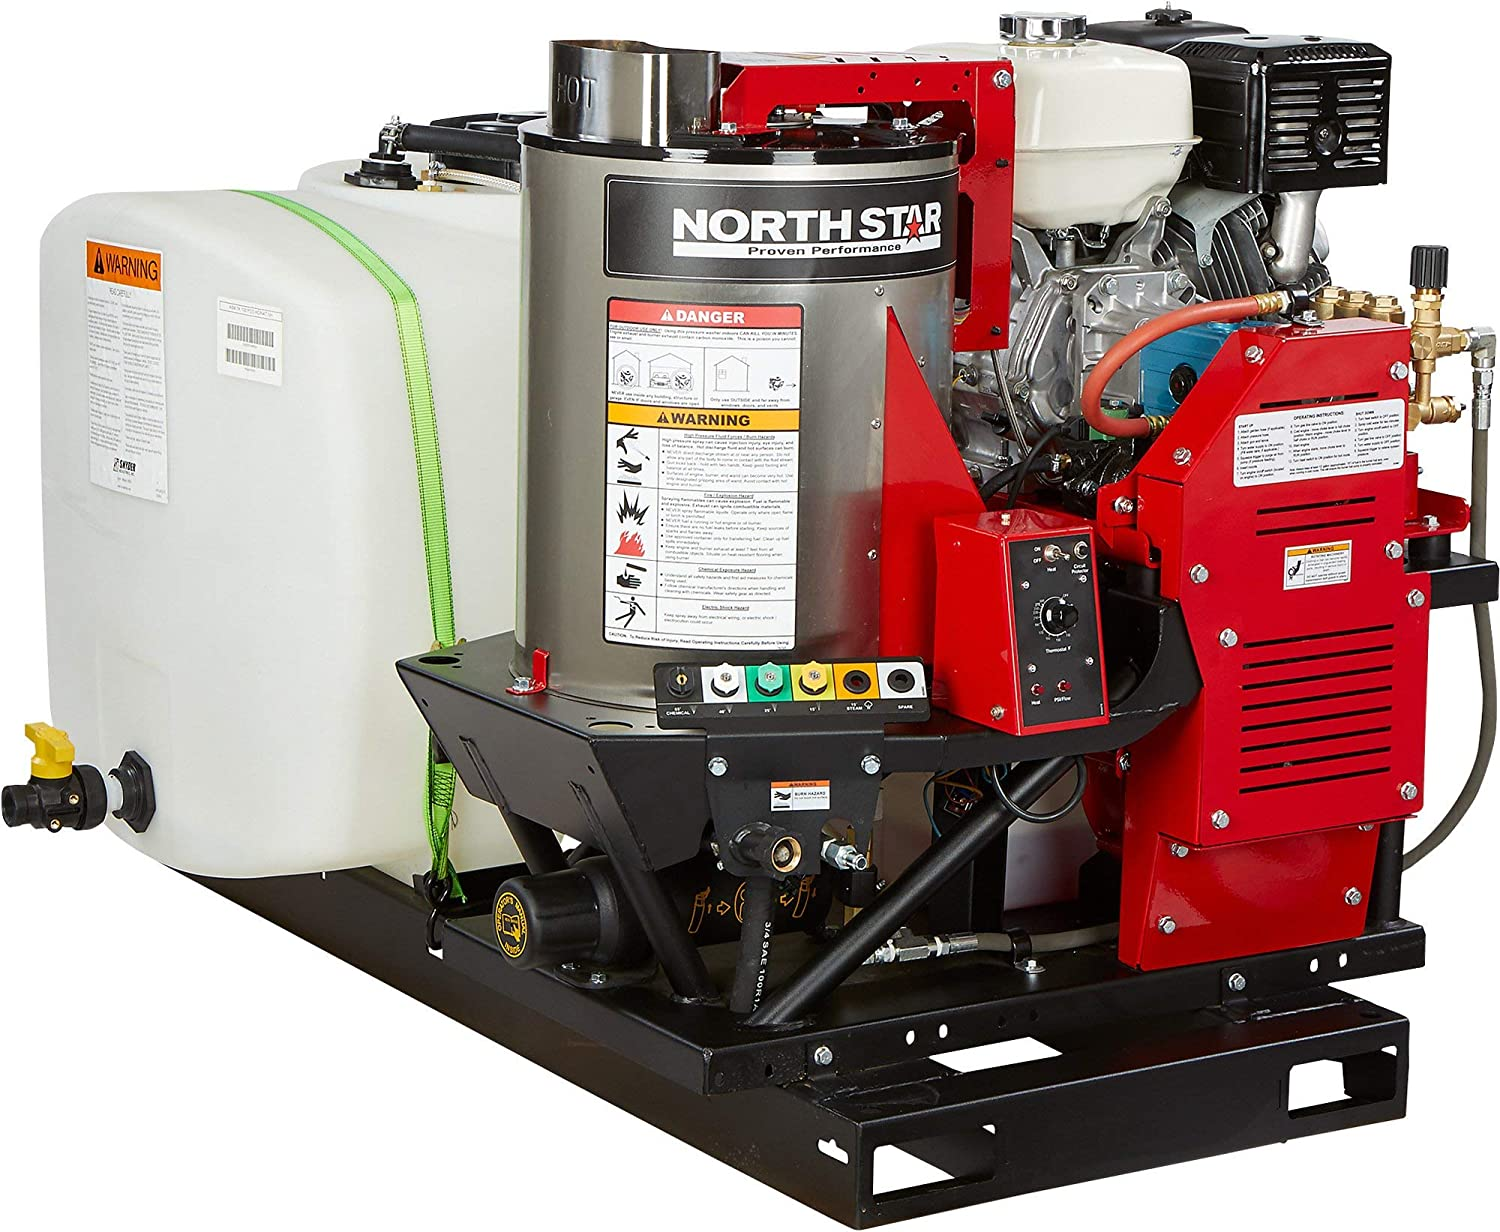 Northstar Hot Water Pressure Washer Skid with Wet Steam - 3000 PSI, 4.0 GPM 100-Gal. Water Tank, Model# 157116